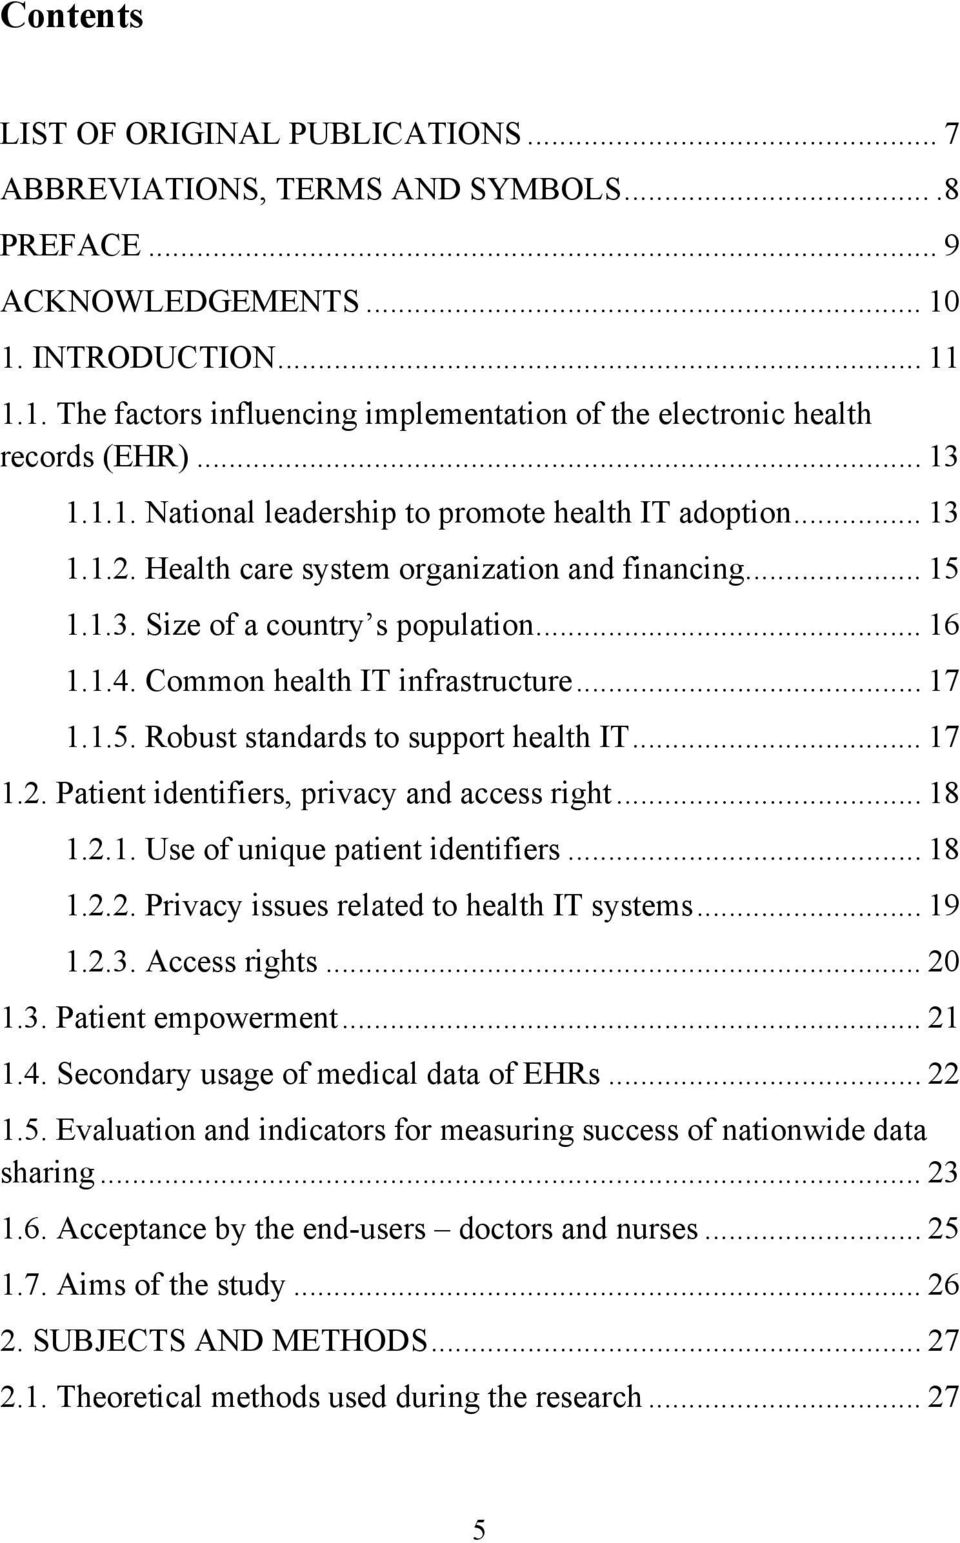 Common health IT infrastructure... 17 1.1.5. Robust standards to support health IT... 17 1.2. Patient identifiers, privacy and access right... 18 1.2.1. Use of unique patient identifiers... 18 1.2.2. Privacy issues related to health IT systems.